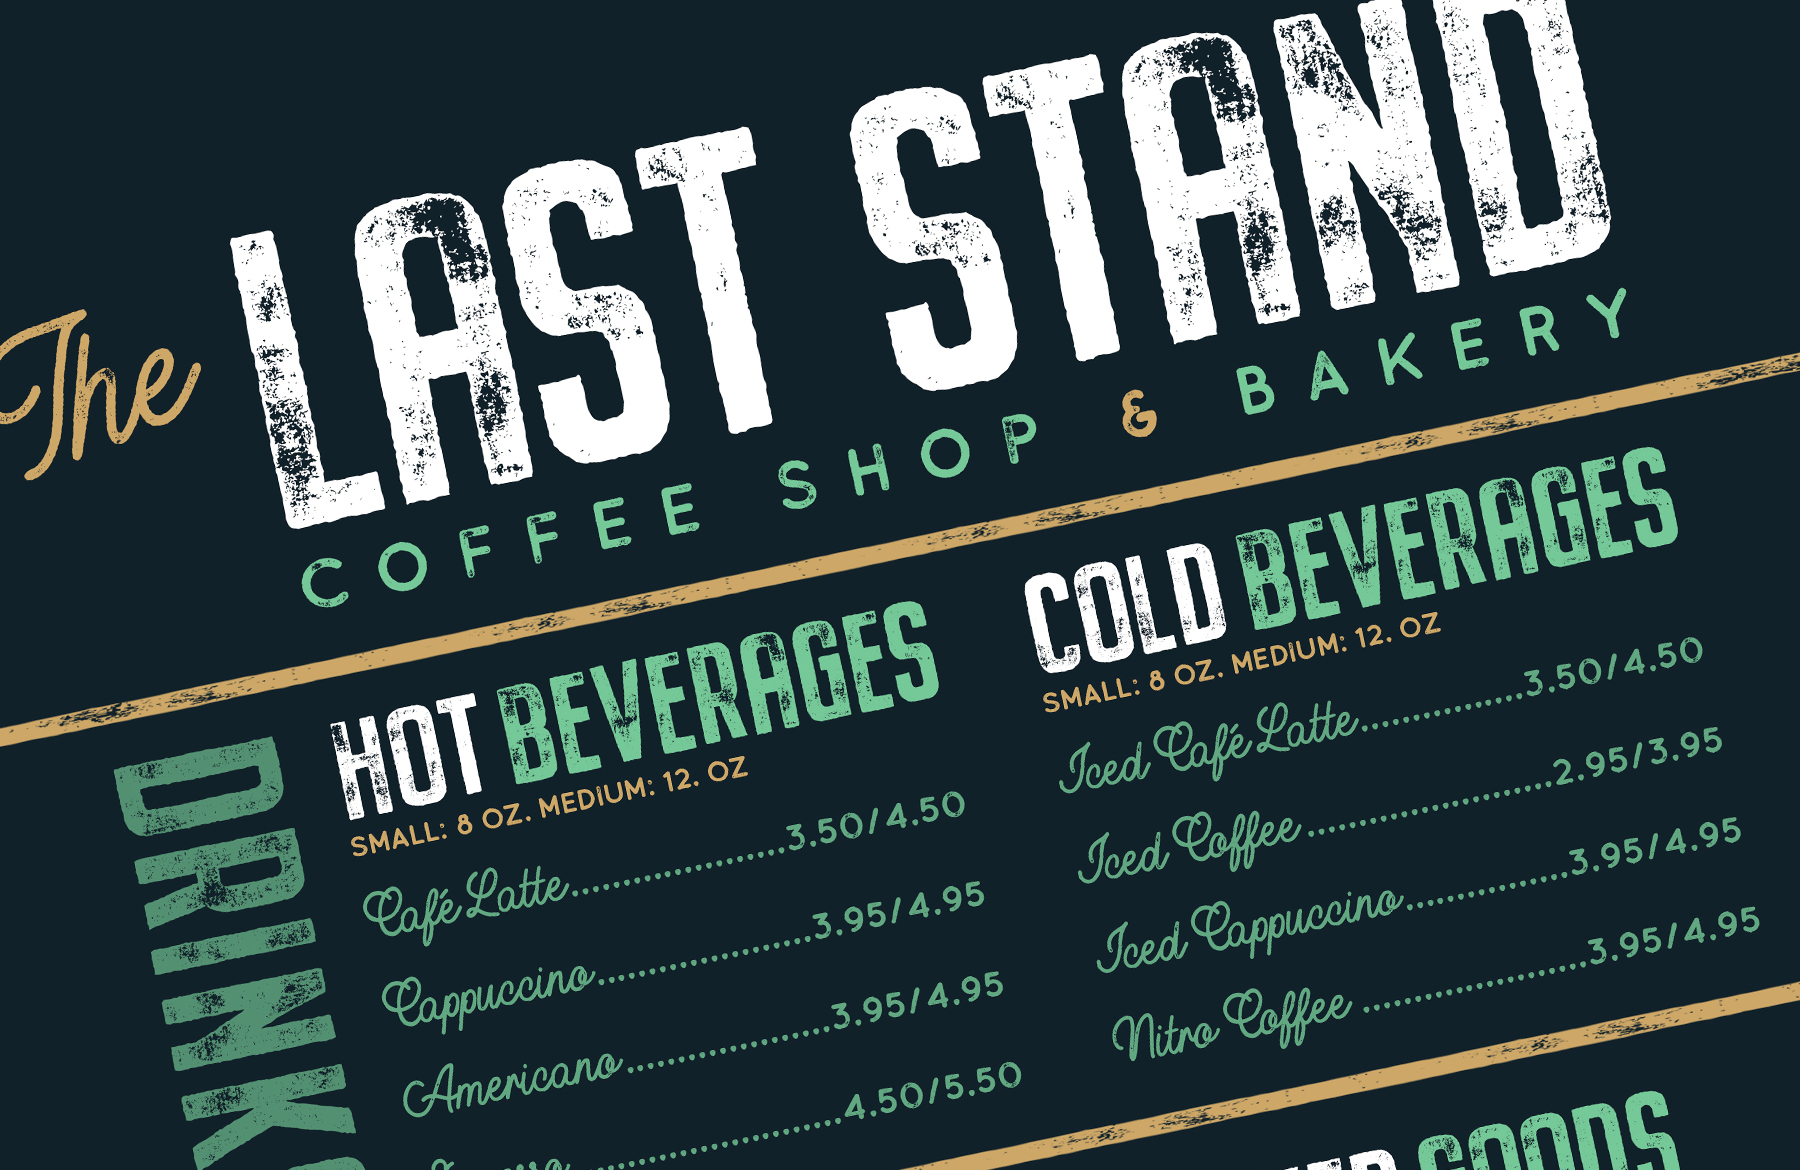 How to Create a Coffee Shop & Bakery Menu Design in Photoshop